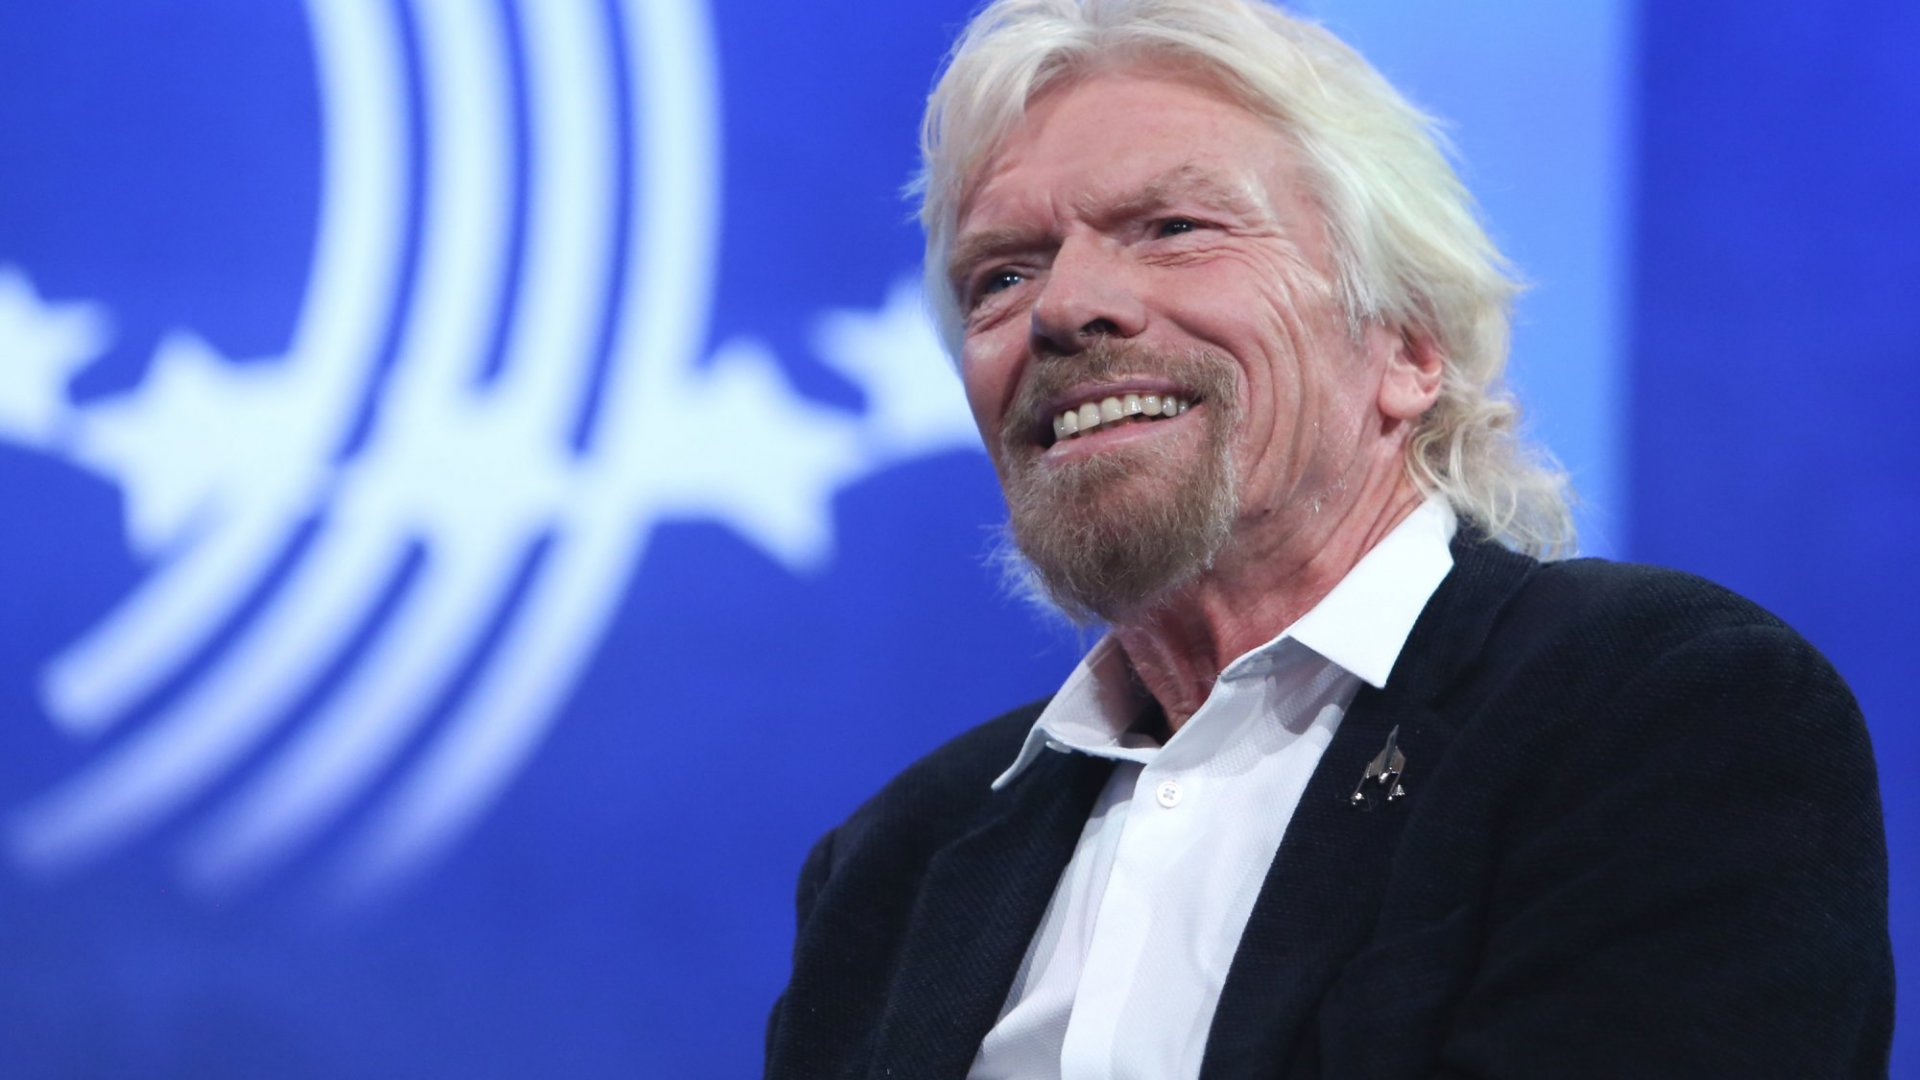 Should You Promote From Within or Bring on an Outsider? According to Richard Branson, the Answer Is Obvious